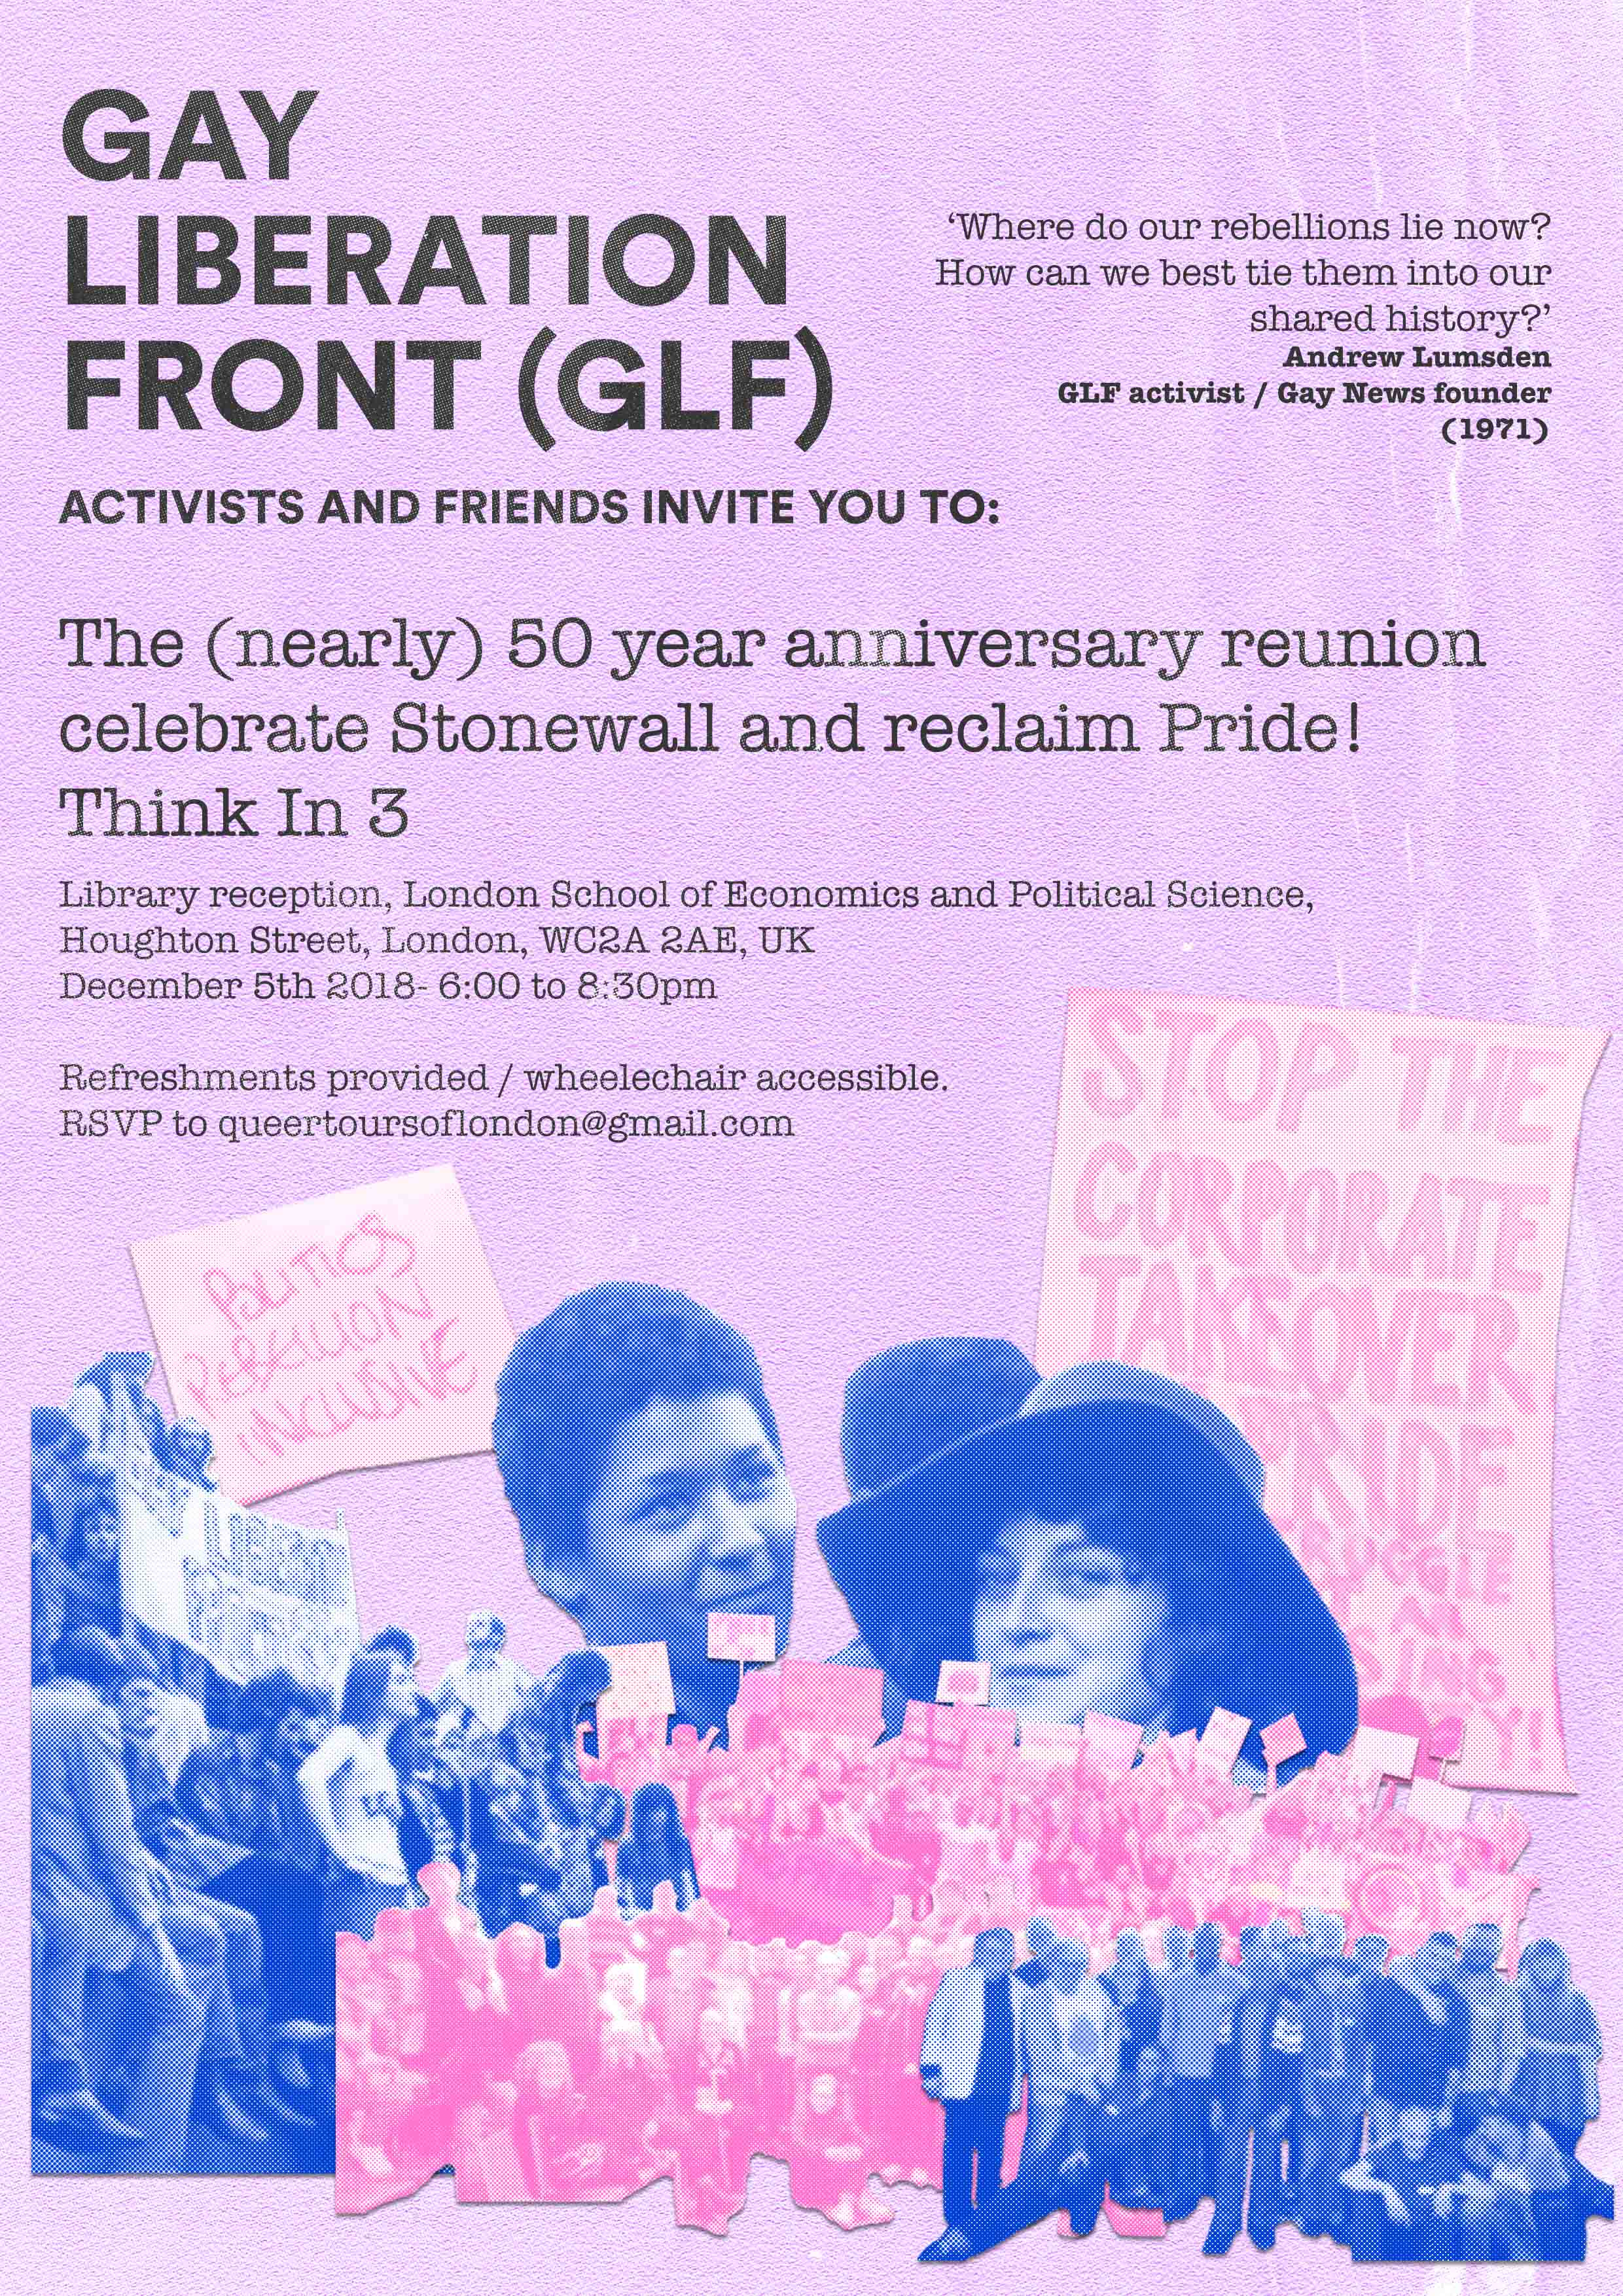 05.12.18 – RSVP for Gay Liberation Front (GLF) and friends 'Think In 3' to Reclaim Pride!